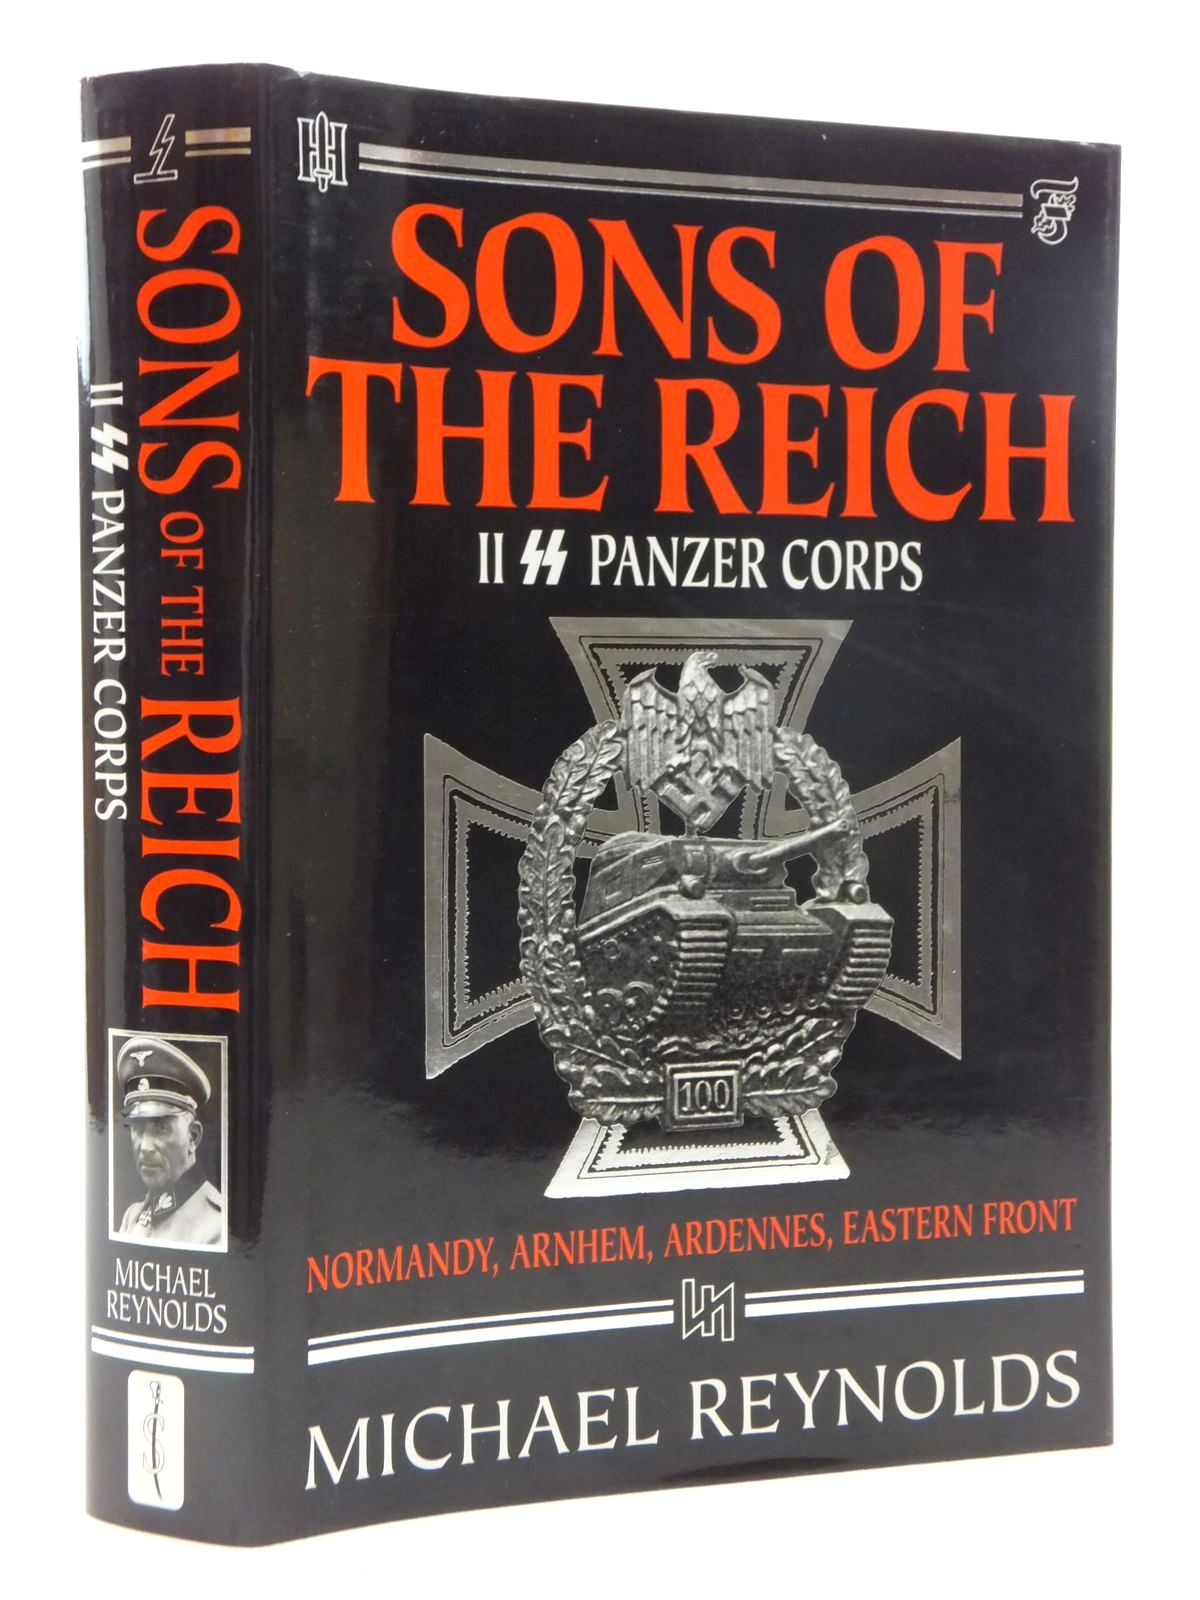 Photo of SONS OF THE REICH written by Reynolds, Michael published by Spellmount Ltd. (STOCK CODE: 1815161)  for sale by Stella & Rose's Books